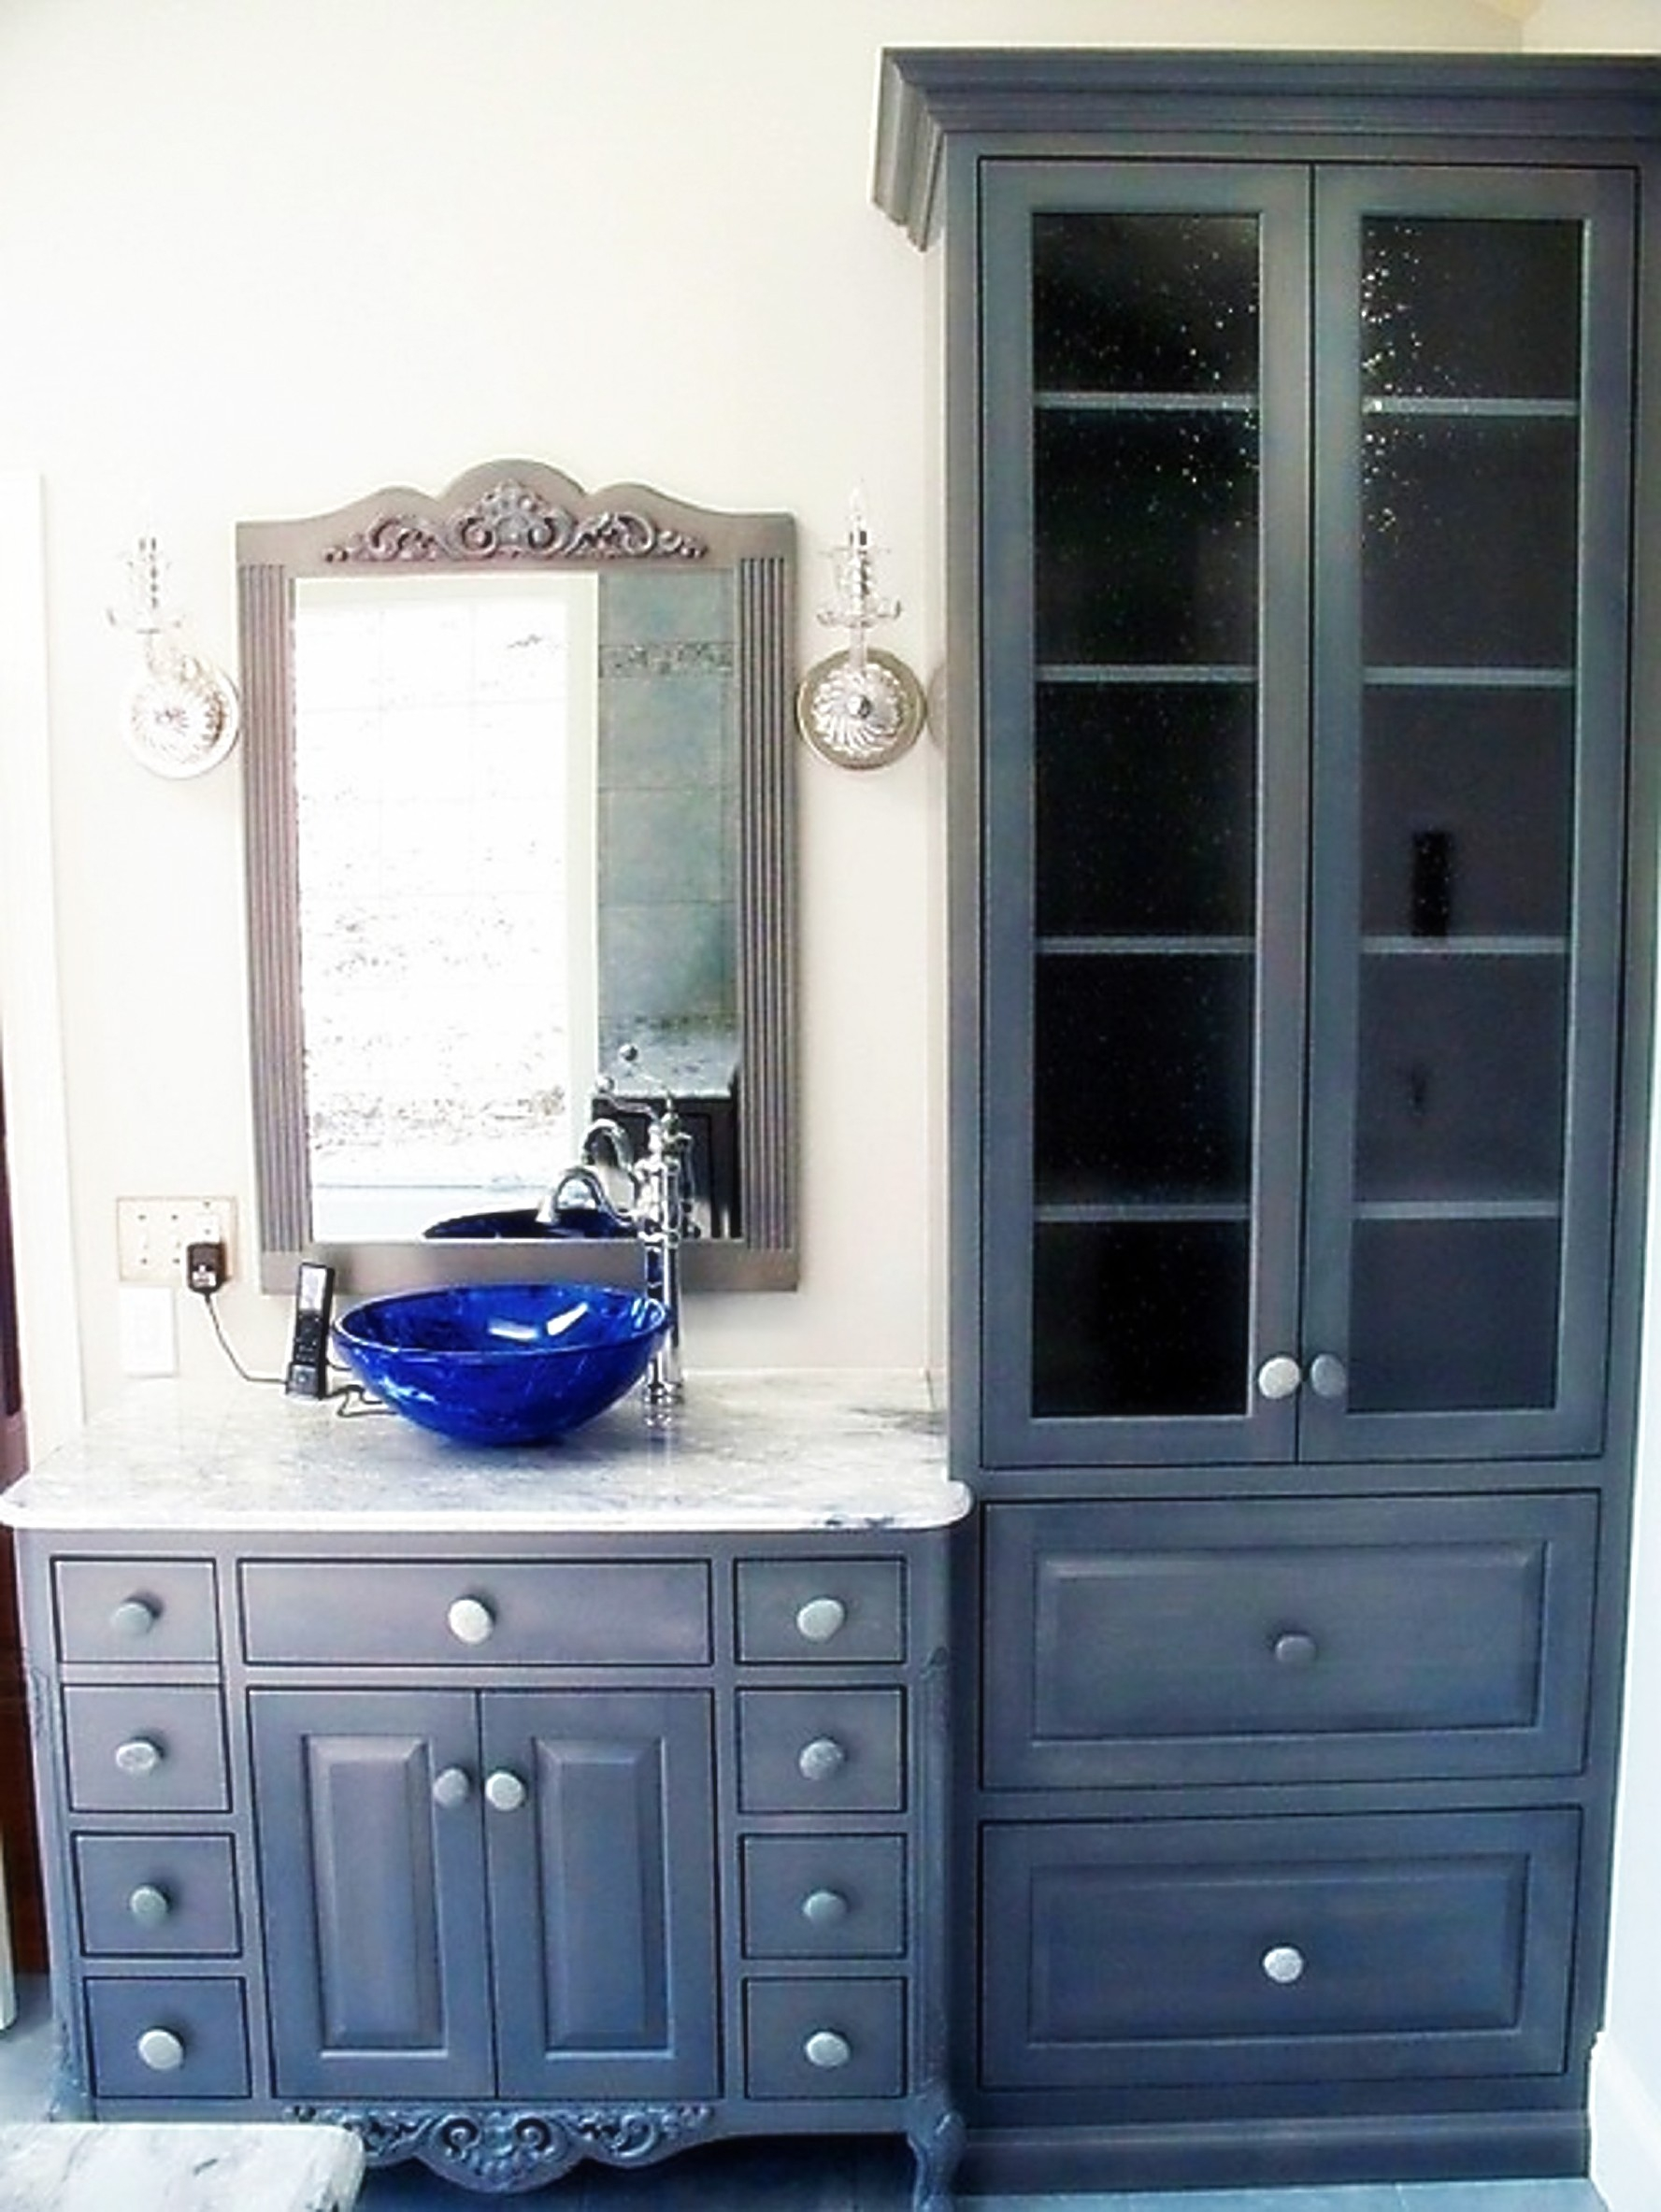 Vintage Bathroom Cabinets For Storage